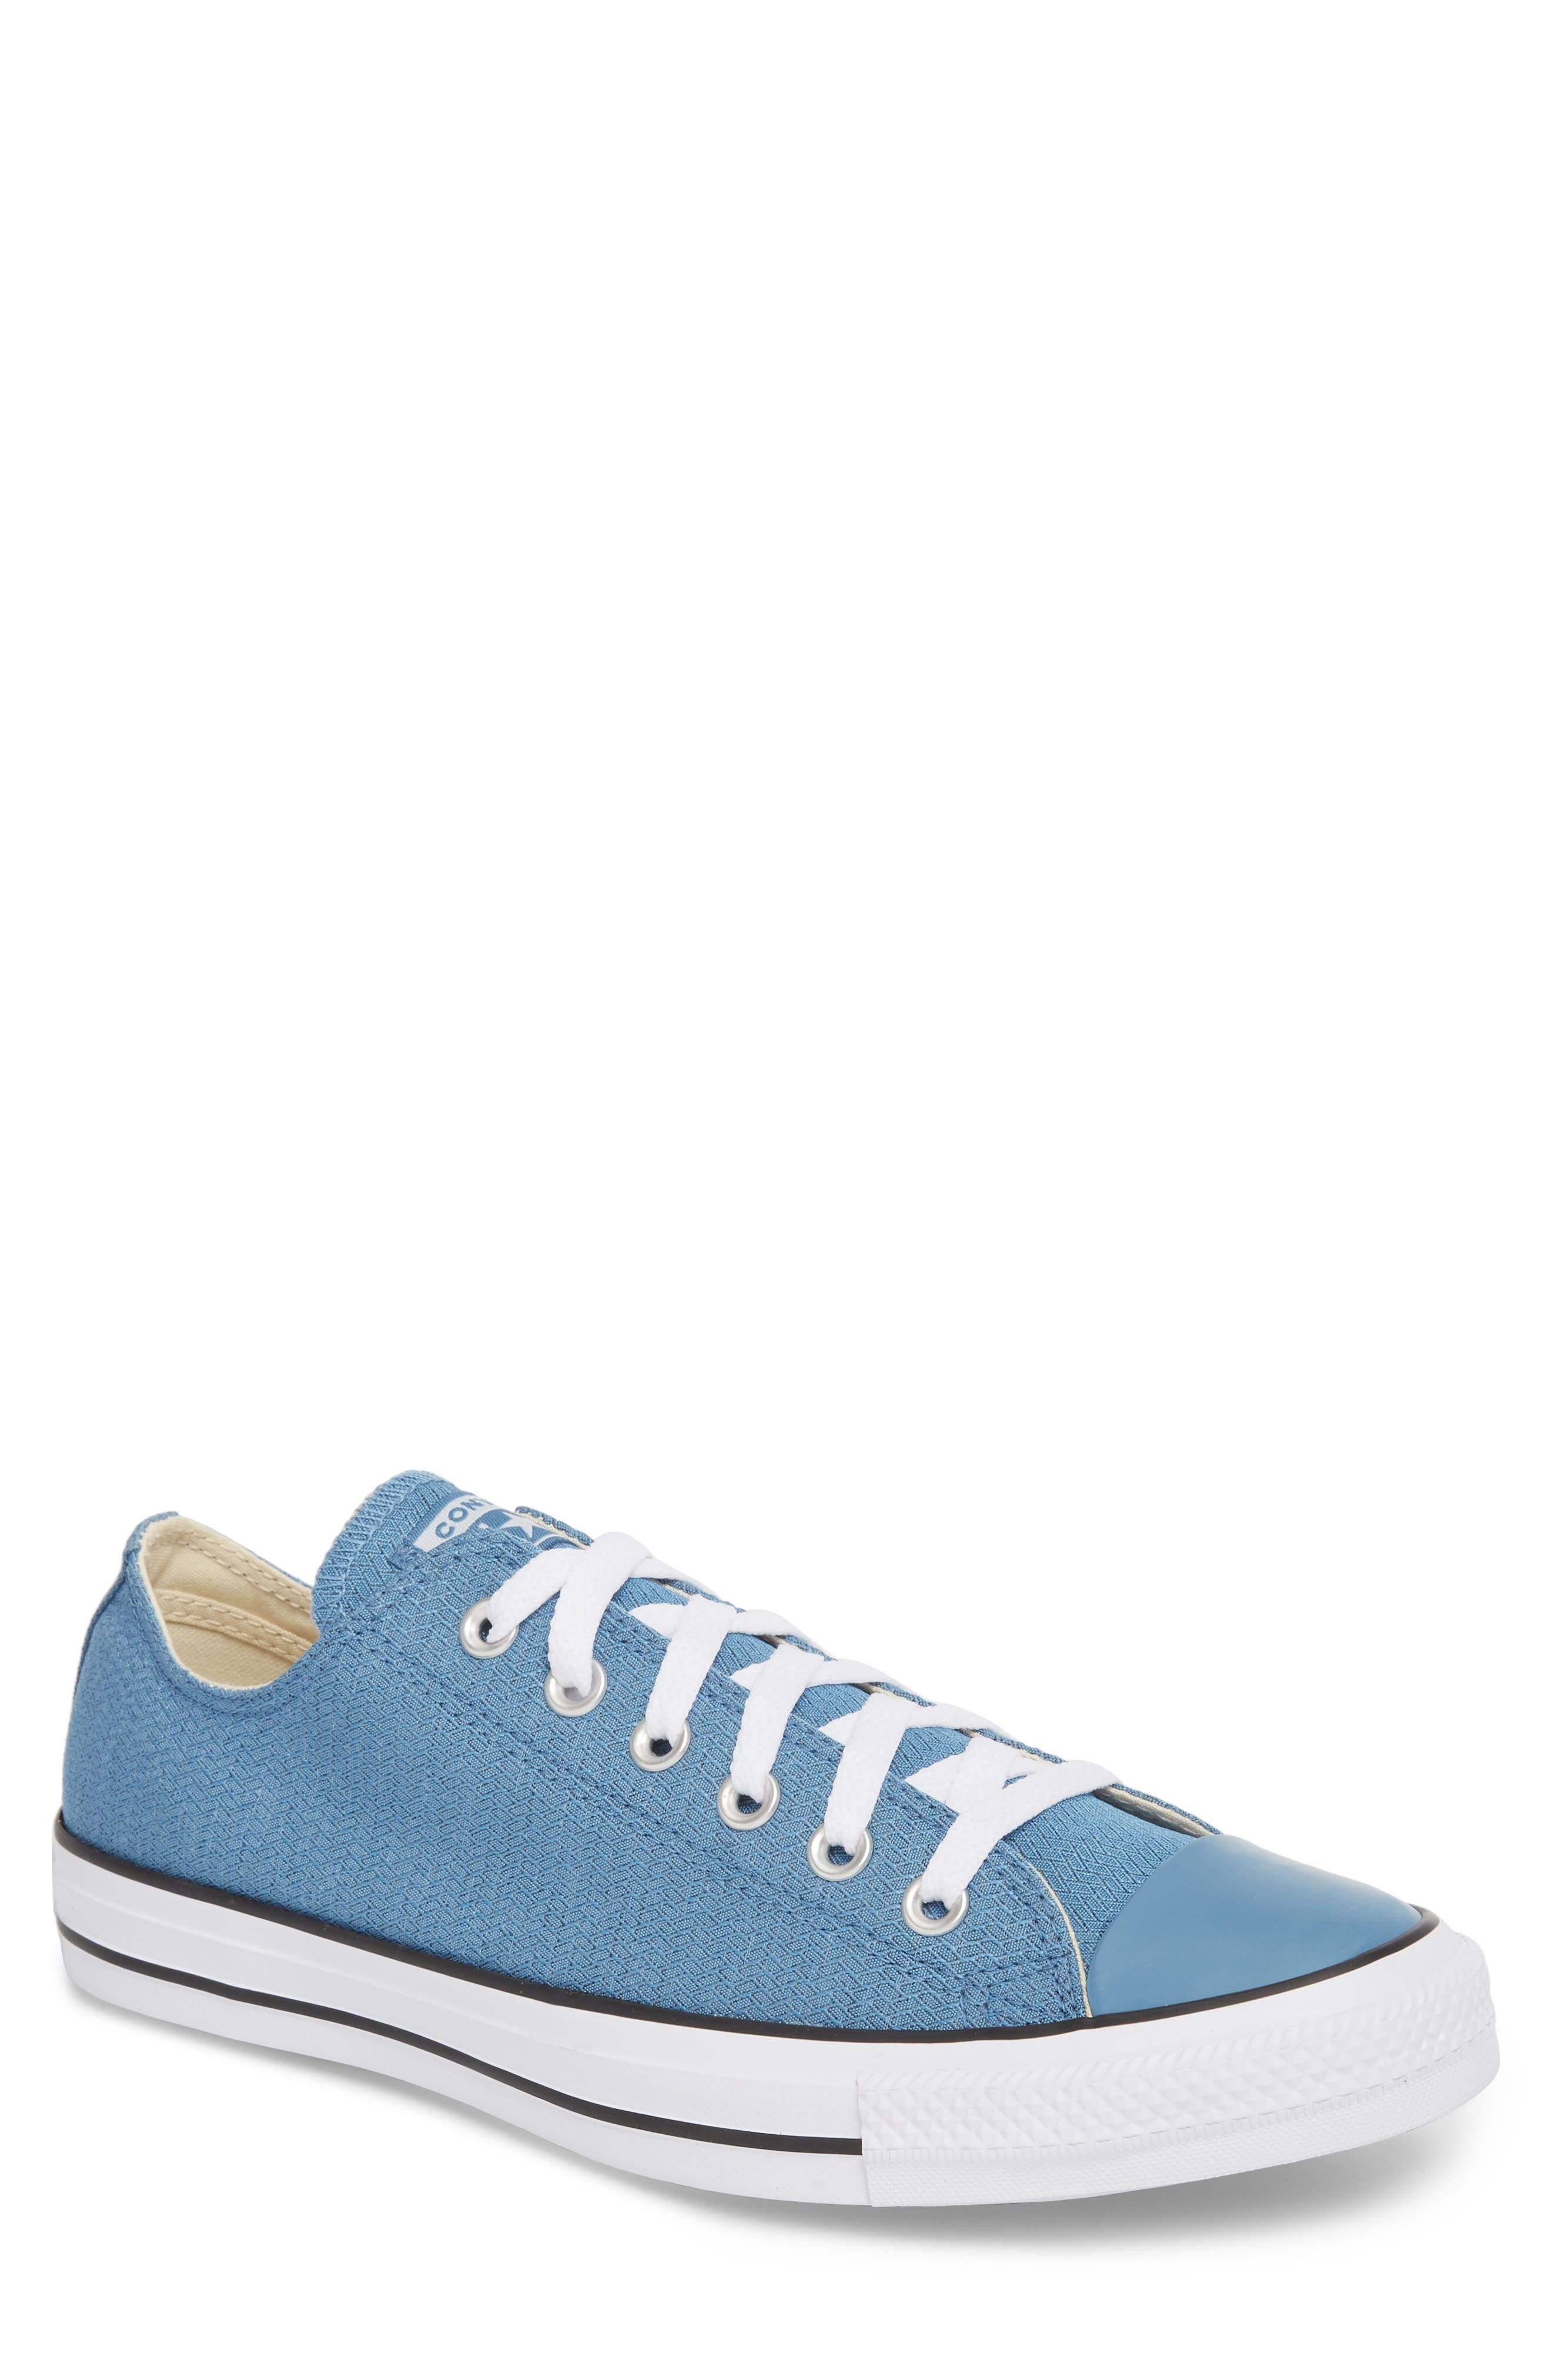 All Star<sup>®</sup> Ripstop Low Top Sneaker,                             Main thumbnail 1, color,                             Aegean Storm